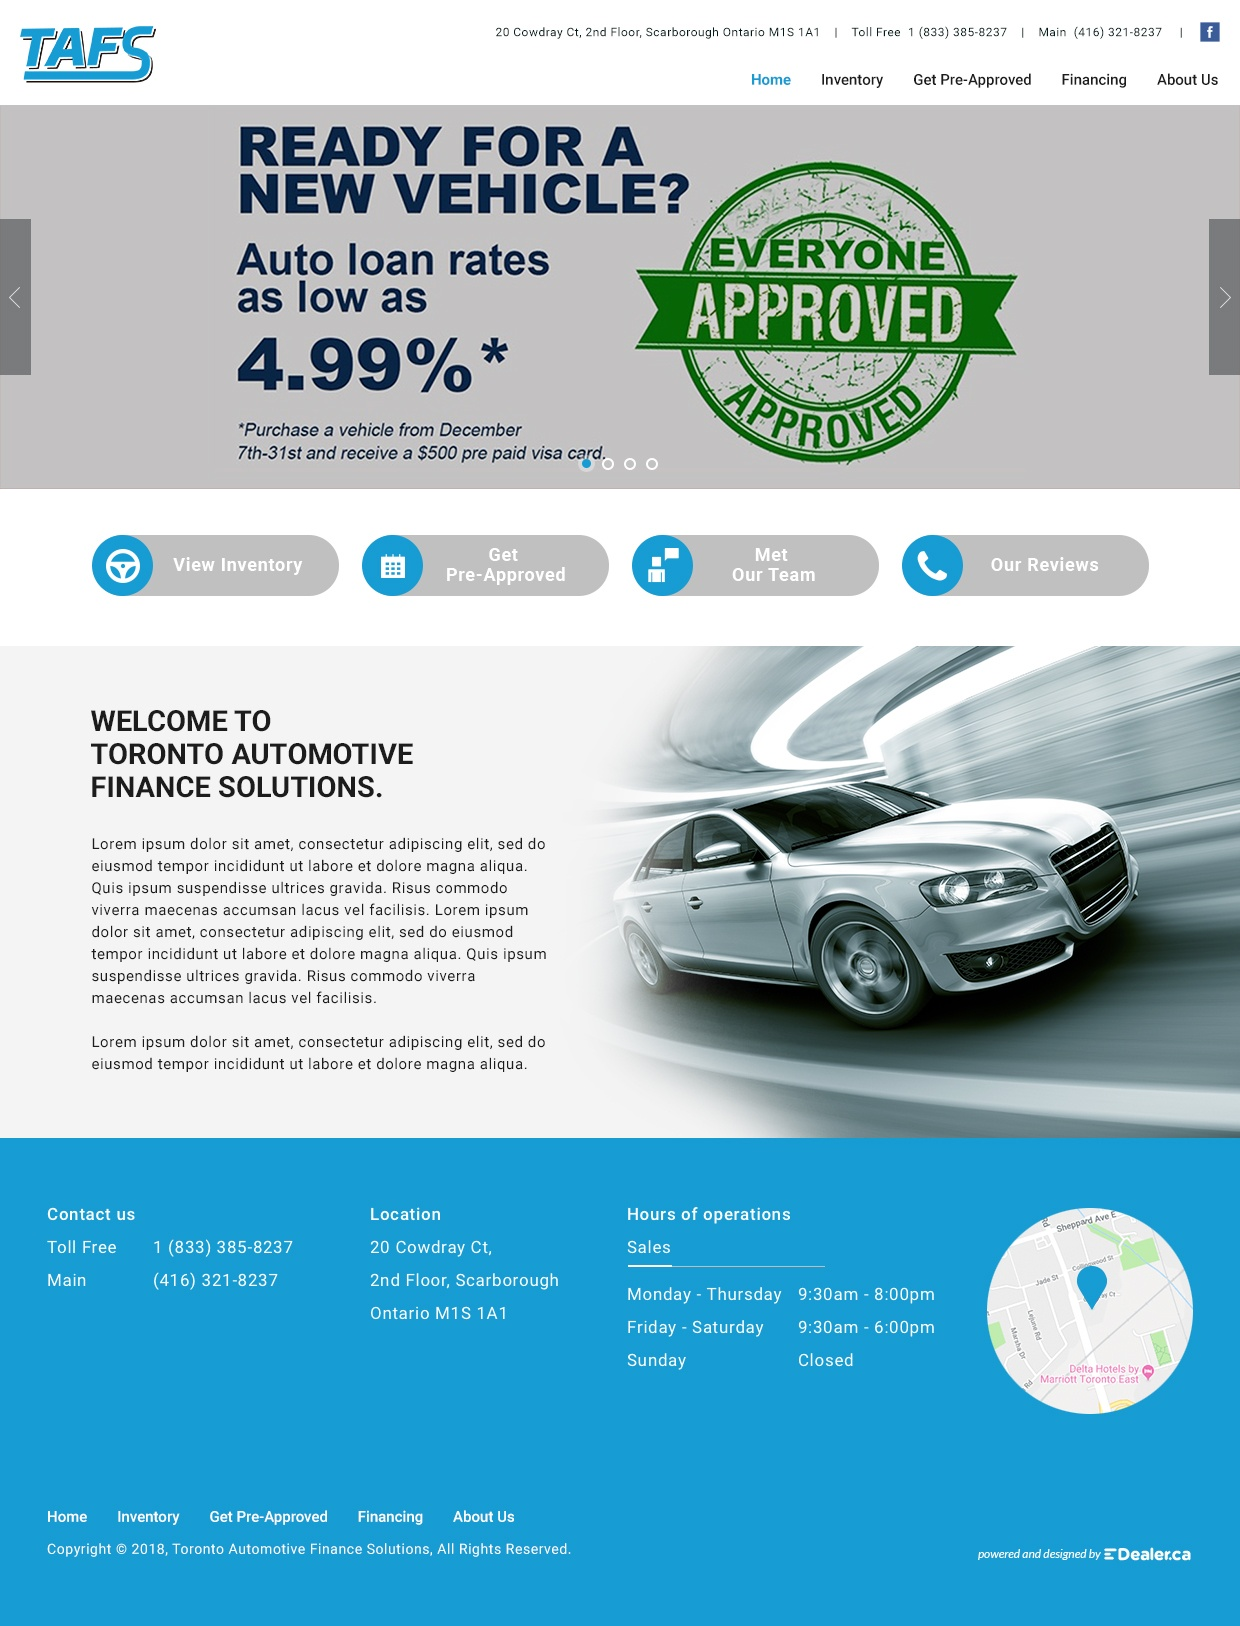 Toronto Automotive Finance Solutions